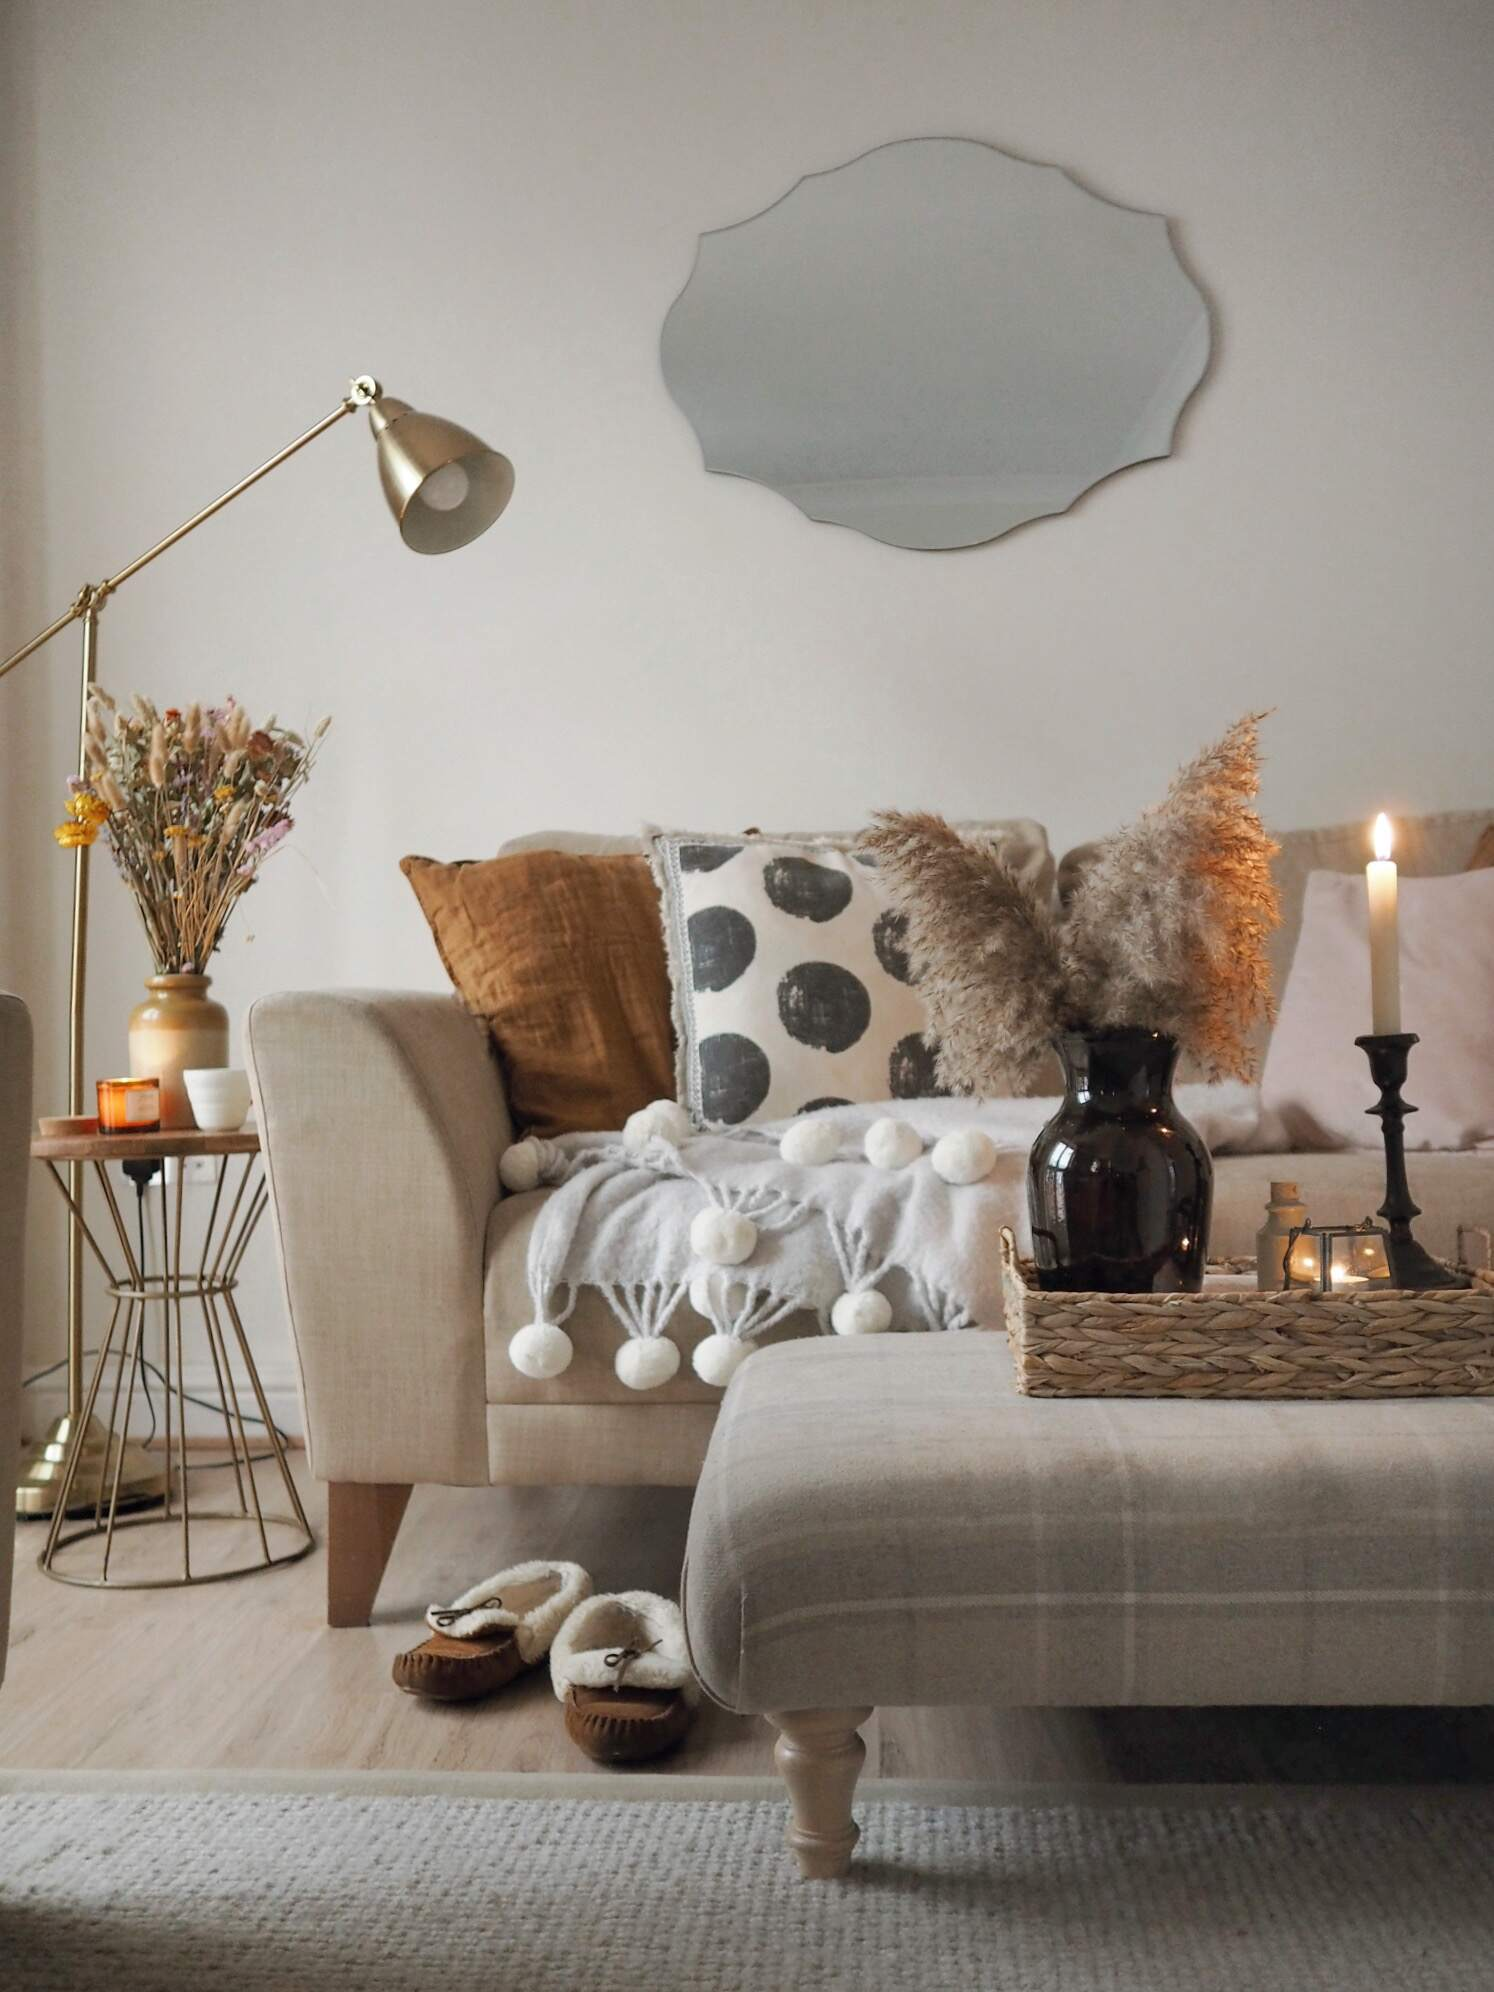 How to use lighting to transform your interiors in any room - from neon LED lighting to floor lamps and table lamps. Lighting inspiration and ideas